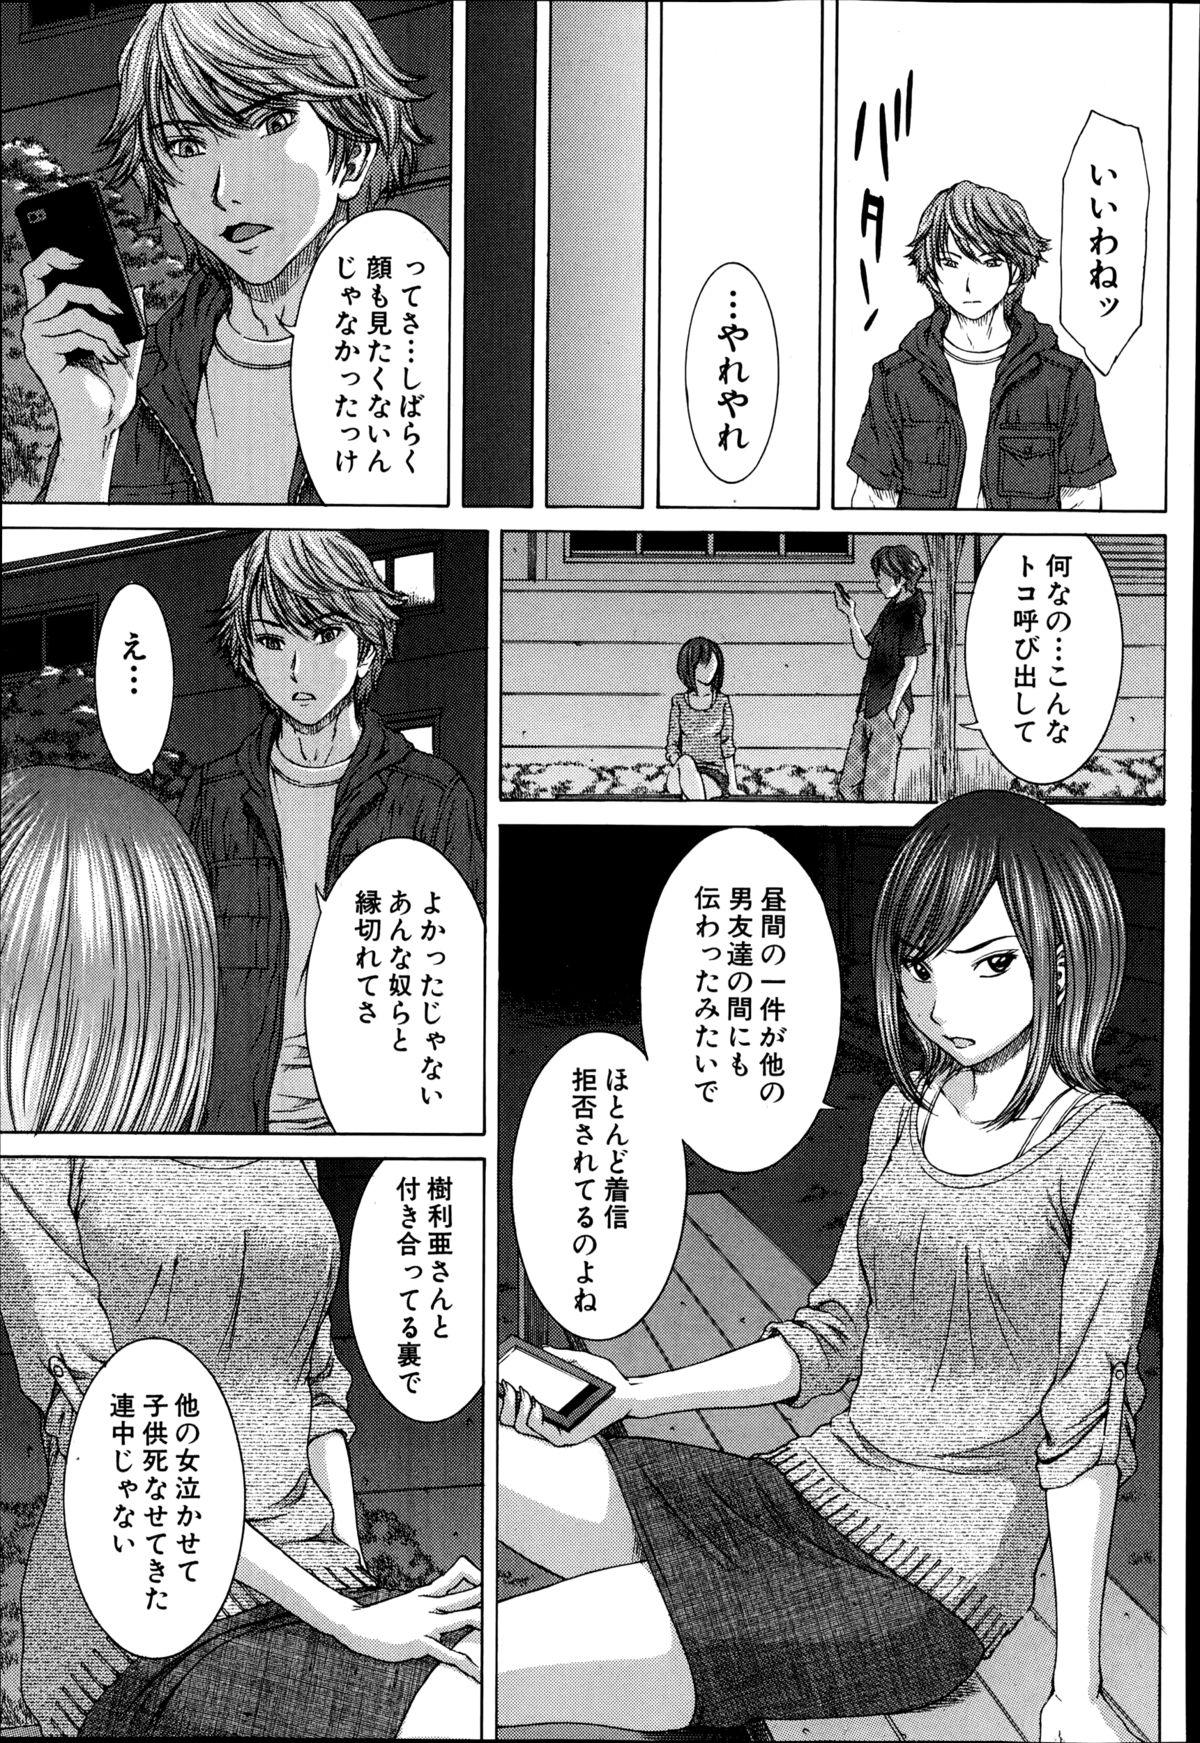 BUSTER COMIC 2014-09 264